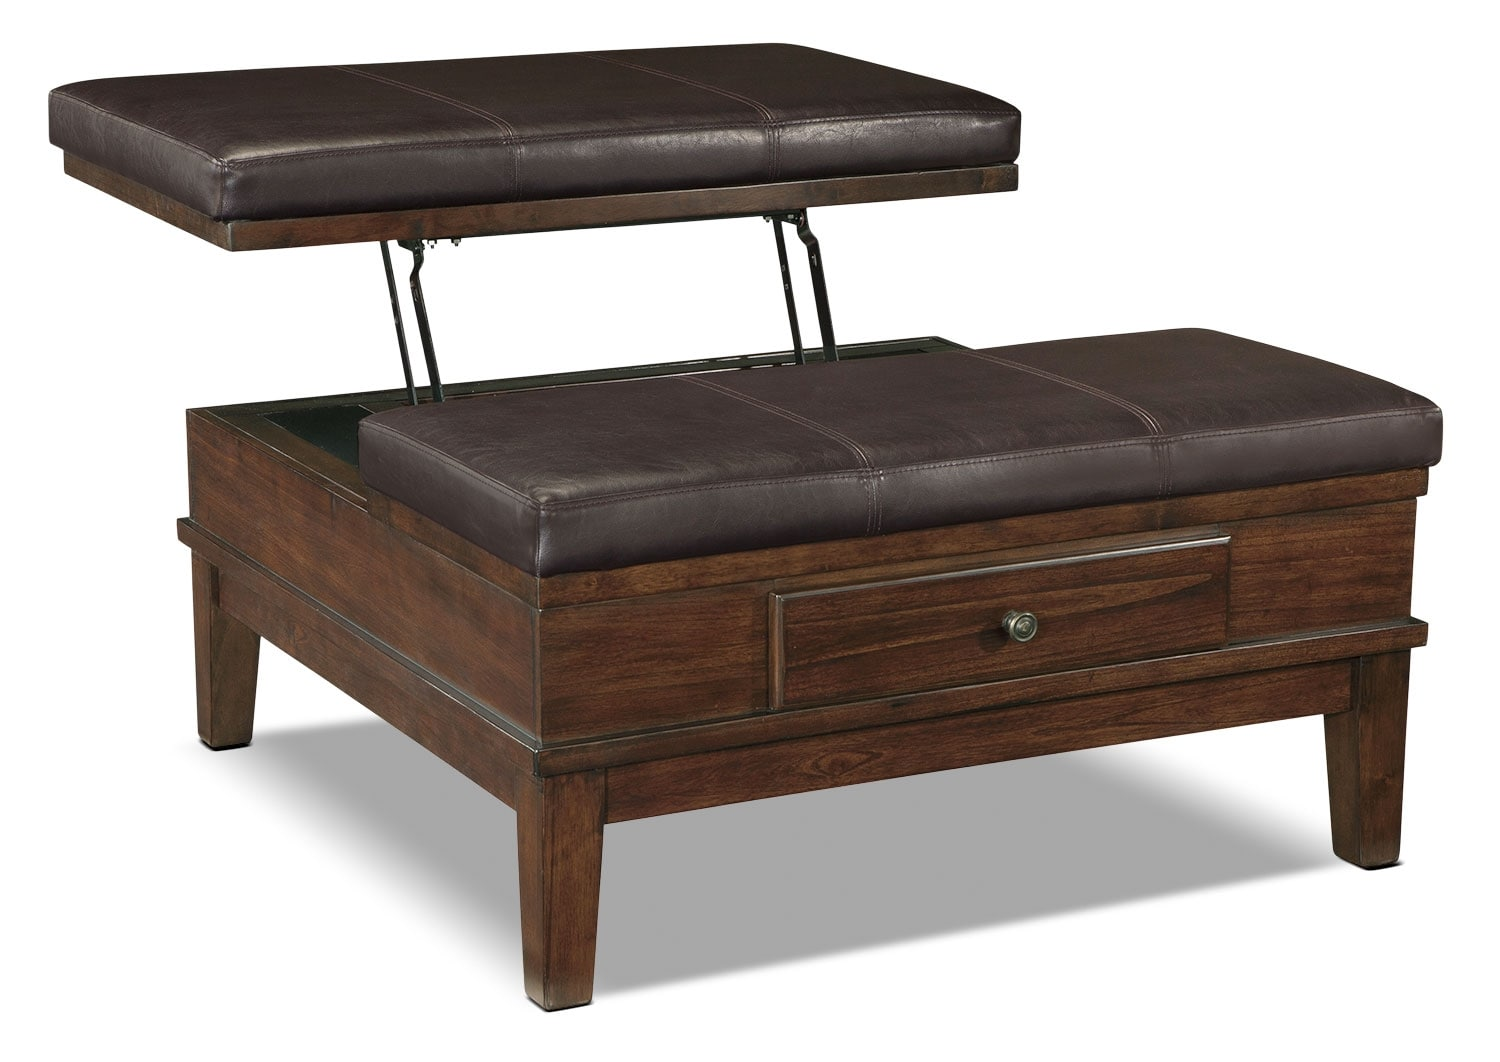 Gately Ottoman Coffee Table With Lift Top The Brick